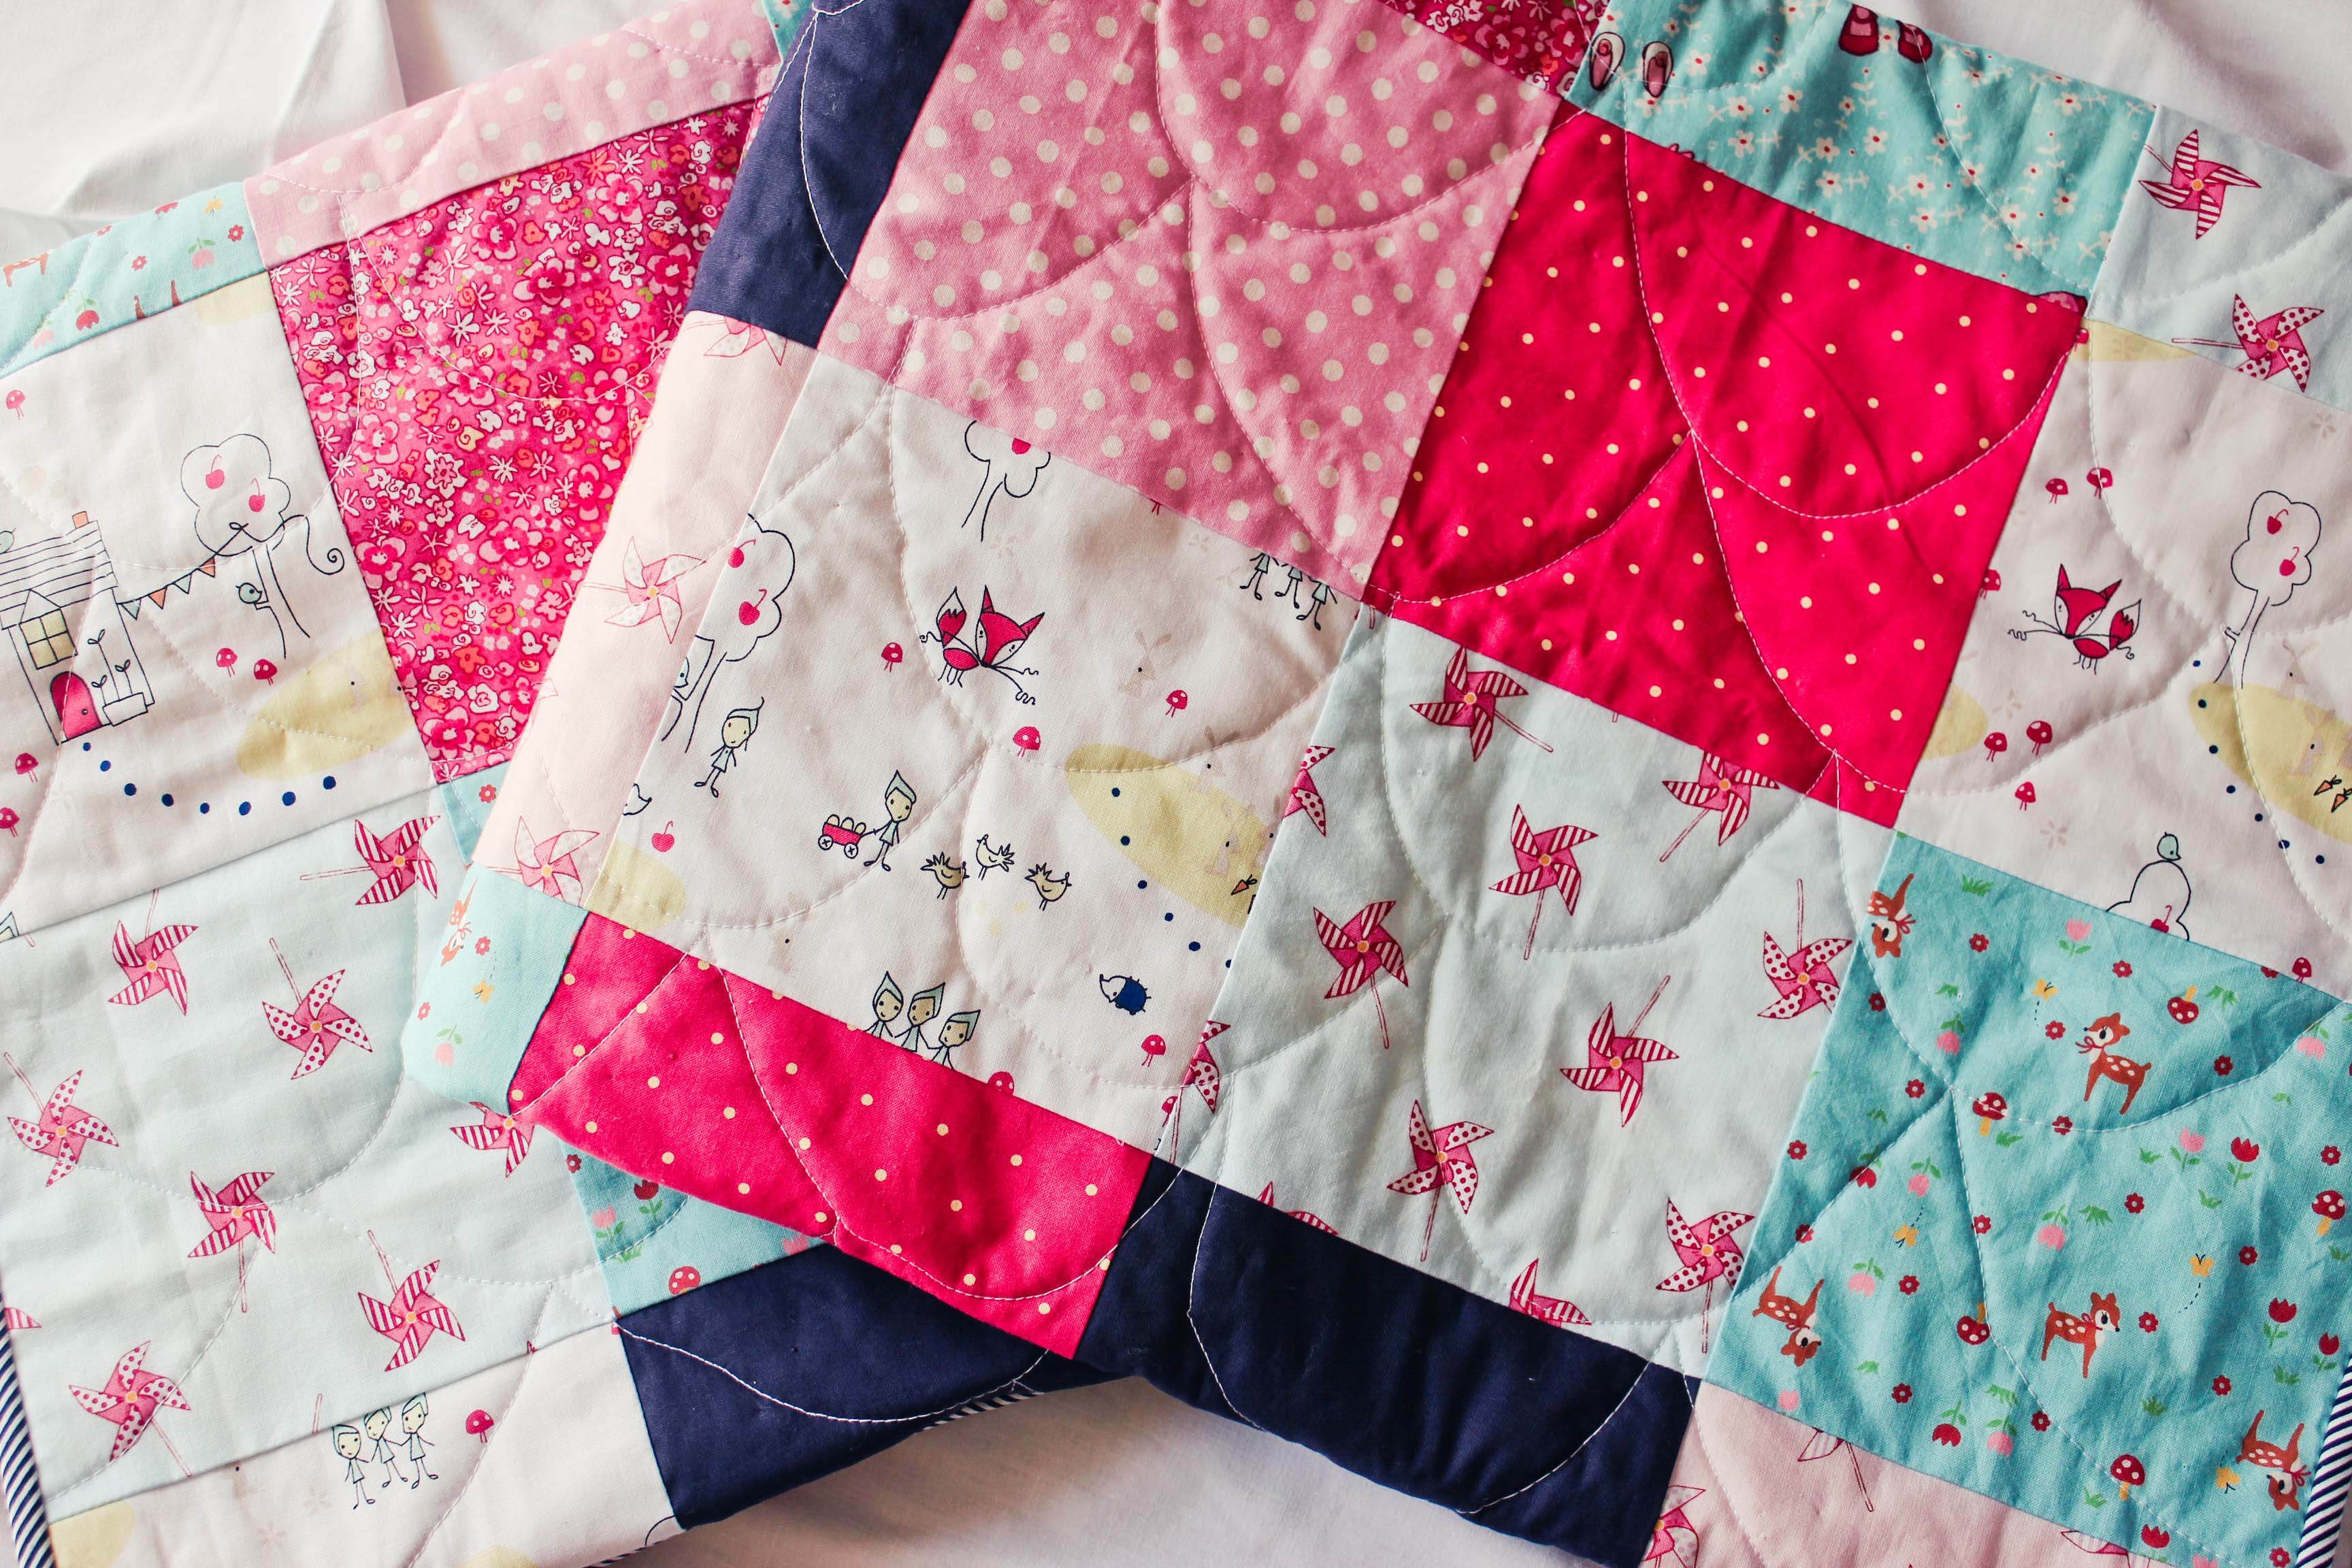 https://i1.wp.com/zarkadia.com/wp-content/uploads/2018/11/Square-quilts-no4-25.jpg?fit=3456%2C2304